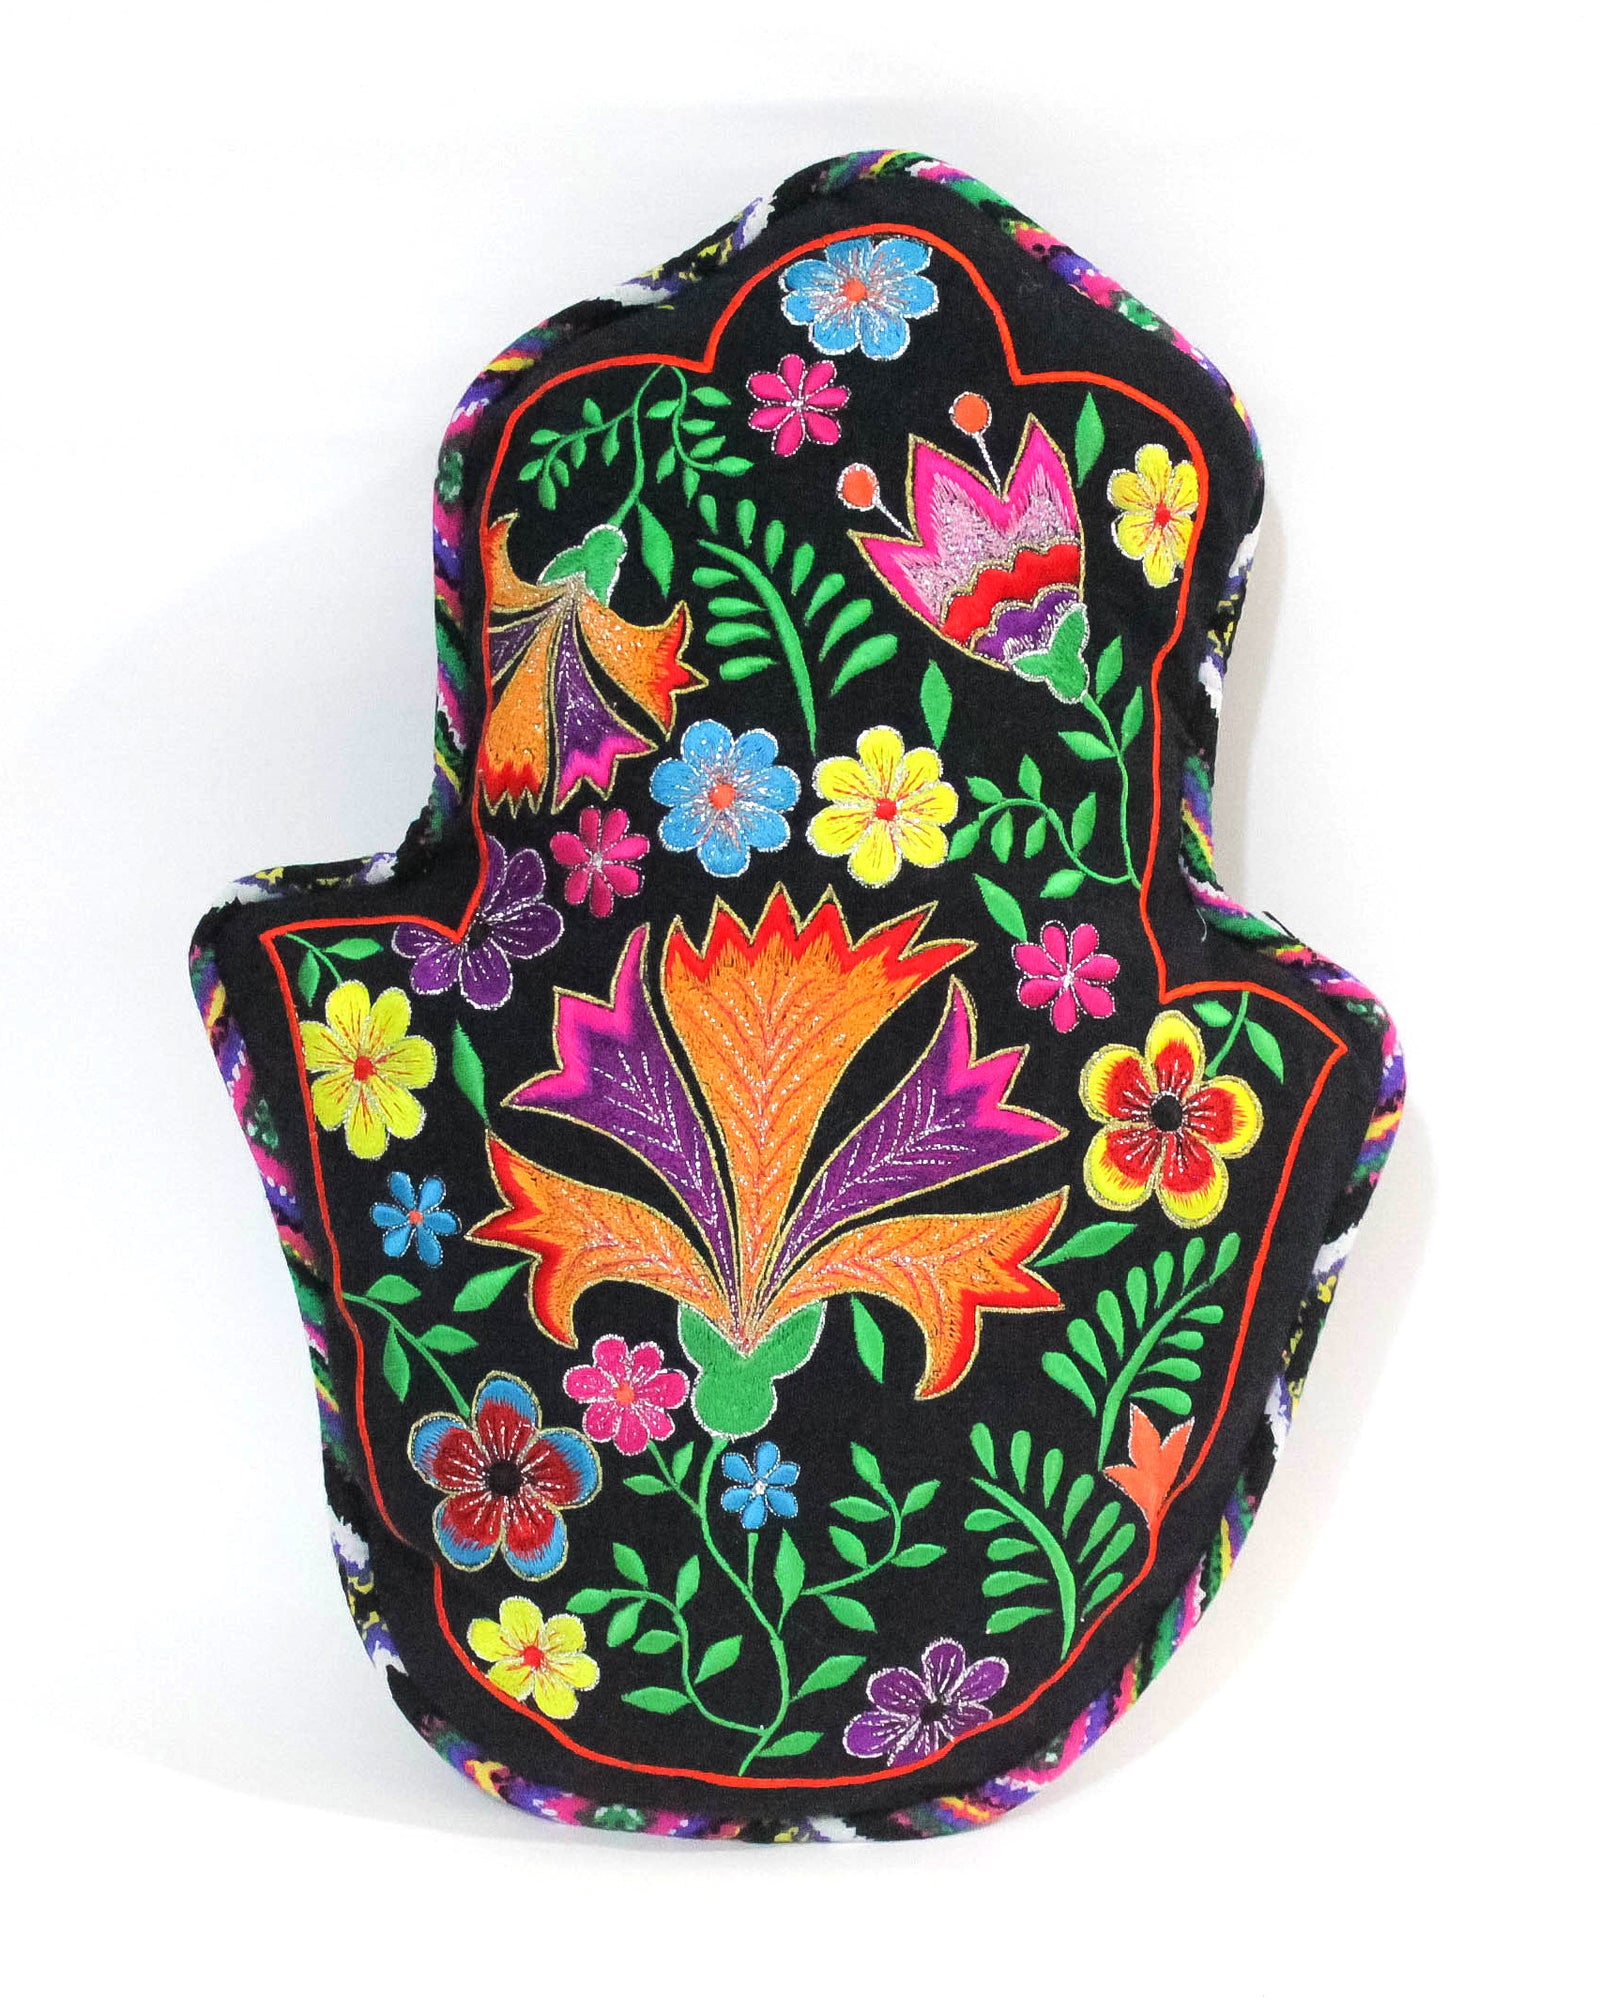 Hand of Fatma, aka Khamsa, Cushion in black